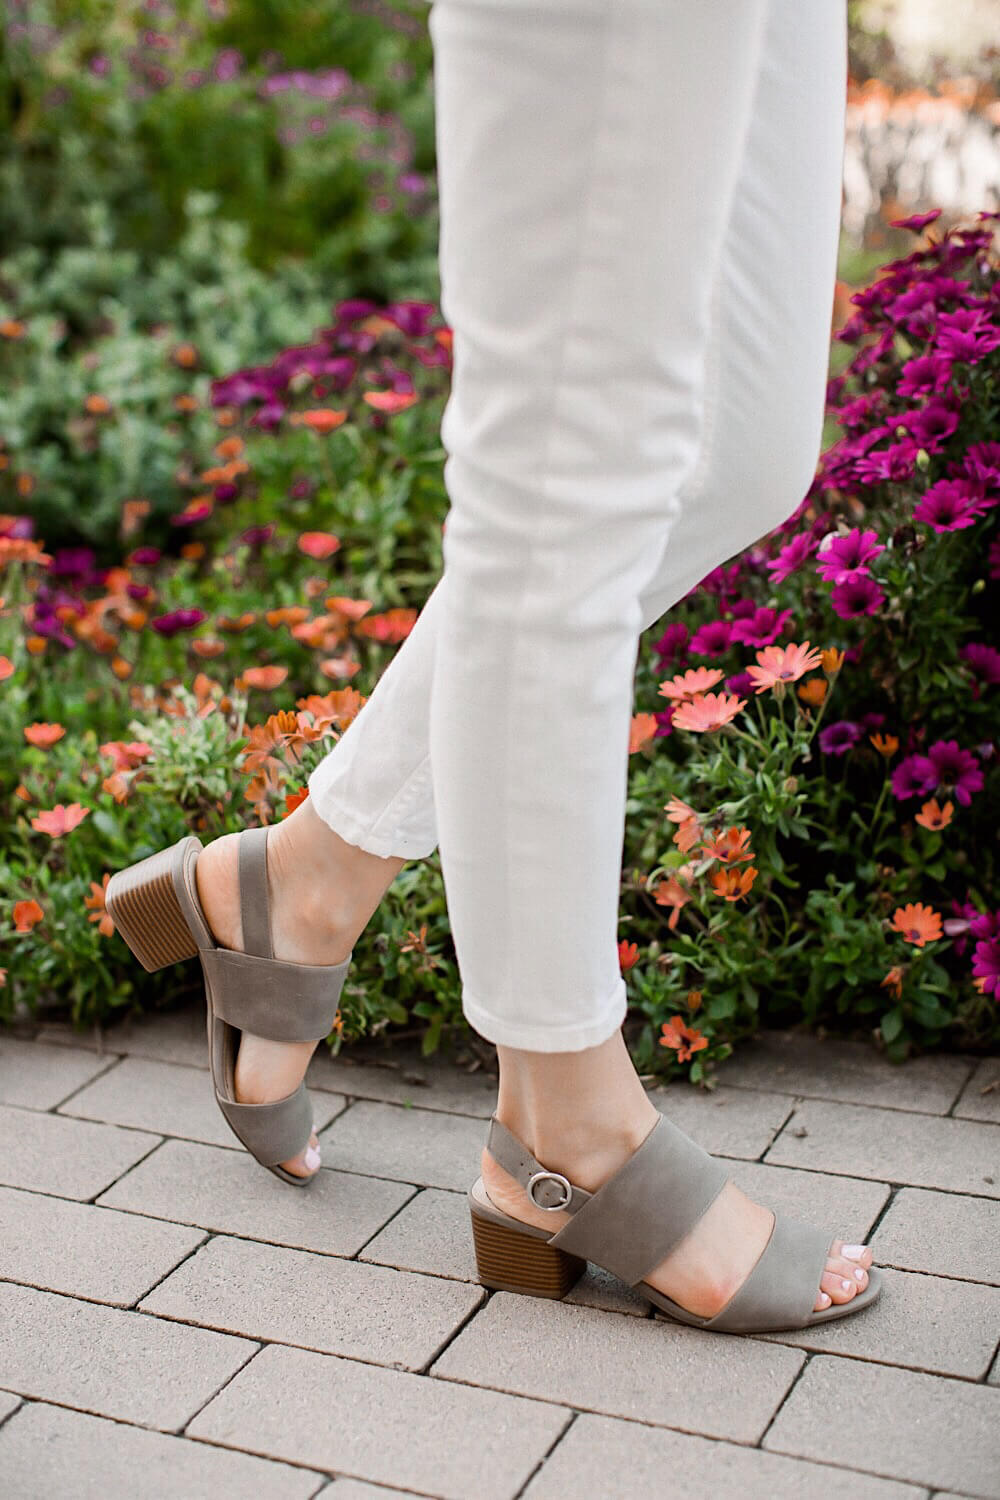 Comfy LifeStride Sandals for Spring | www.girlmeetsgold.com